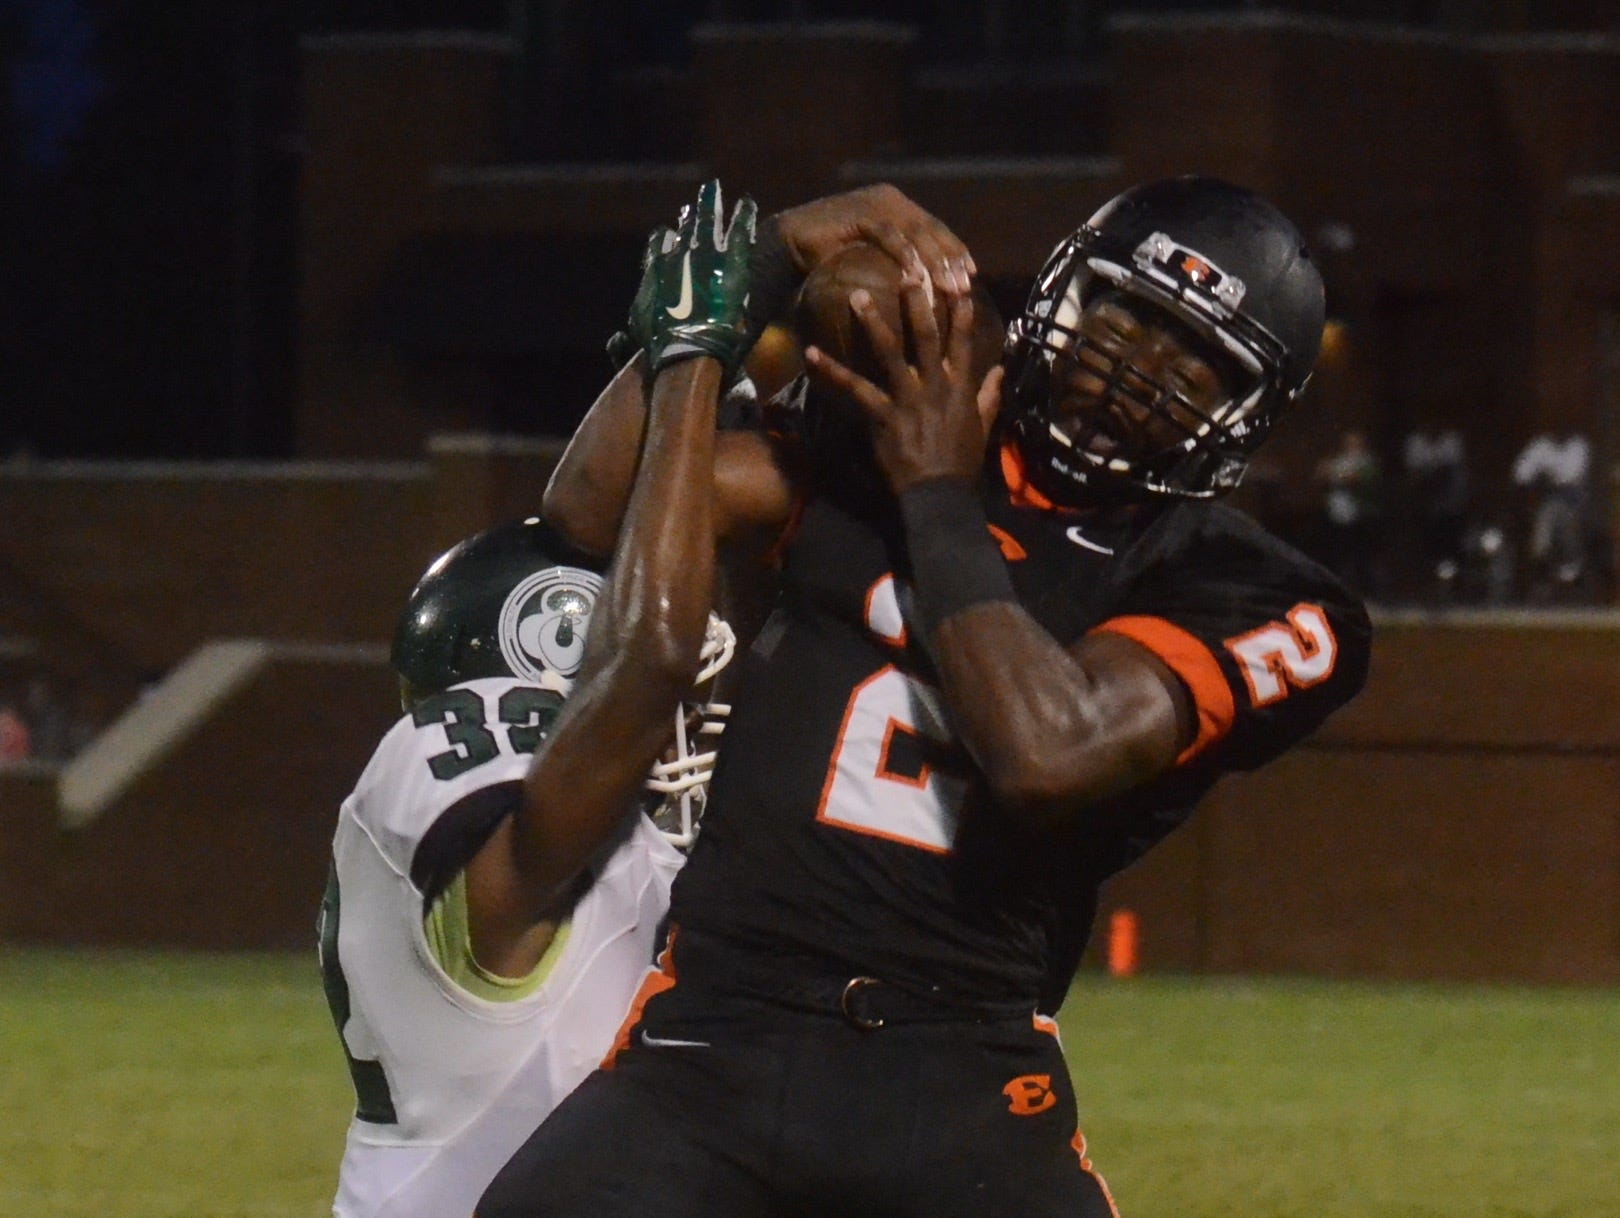 Ensworth's Rodney Owens (2) hauls in a long second-quarter reception during Friday's game against Trinity.